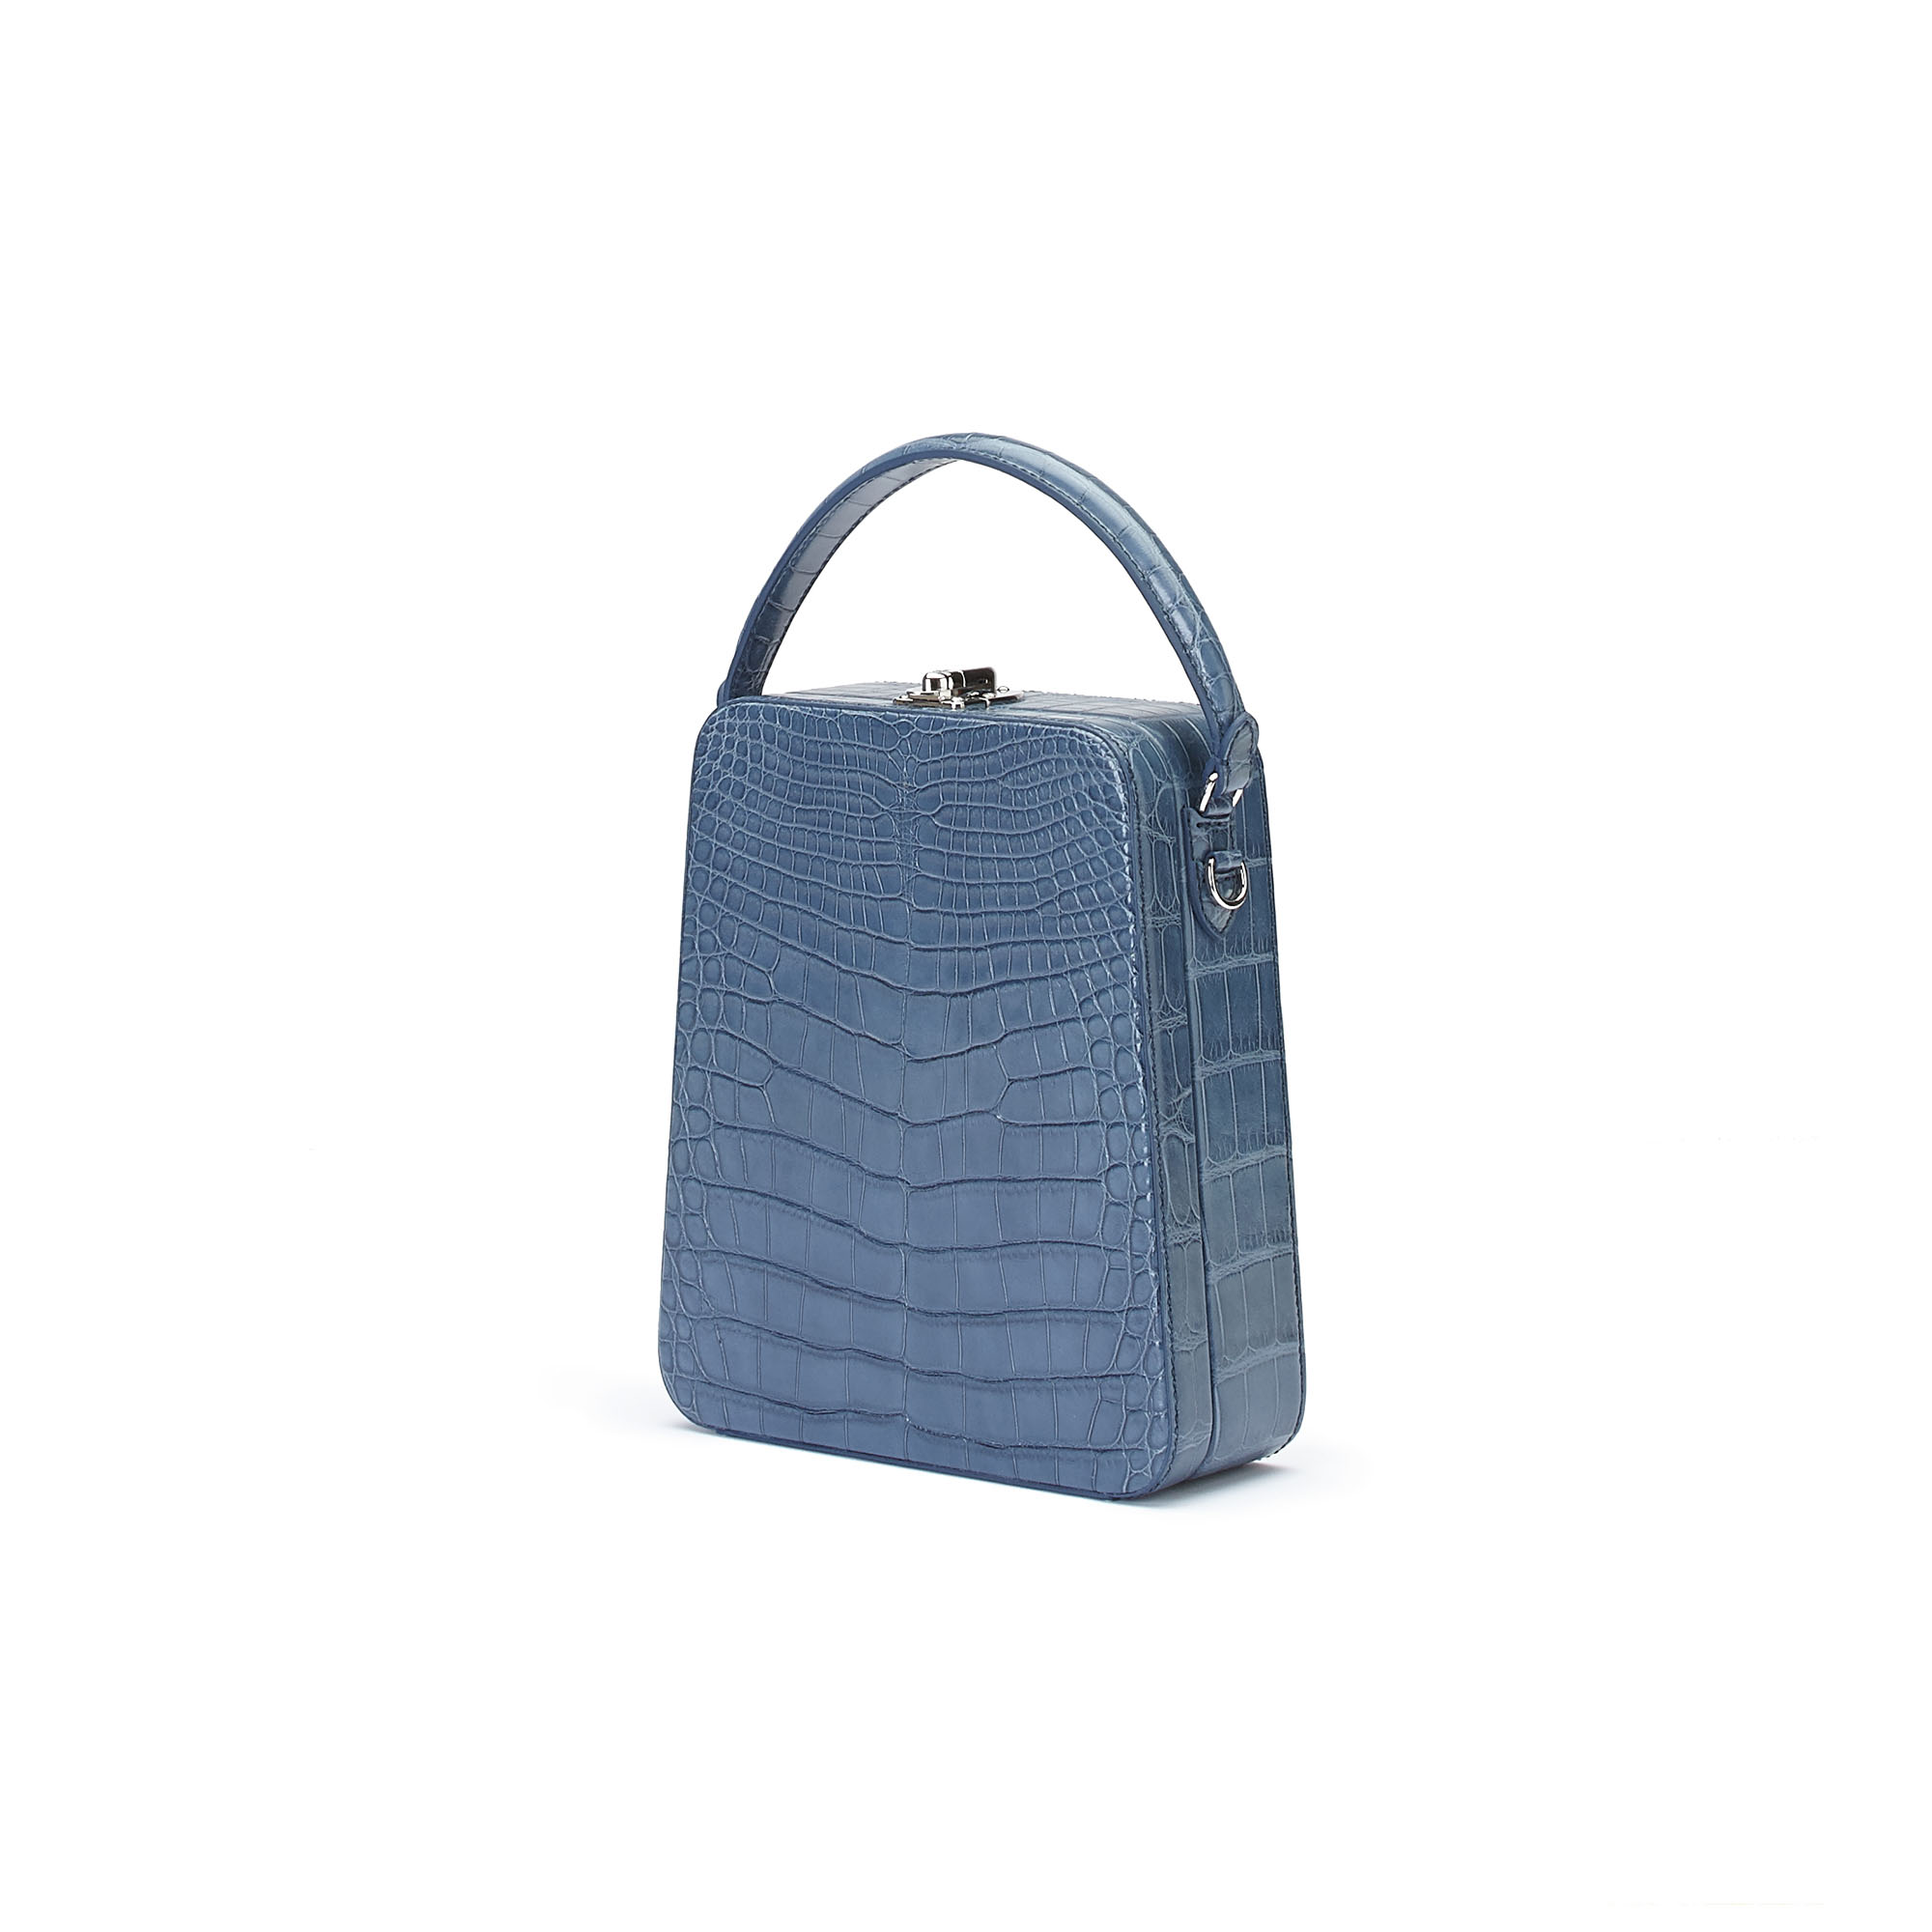 The blue alligator denim Tall Bertoncina bag by Bertoni 1949 02